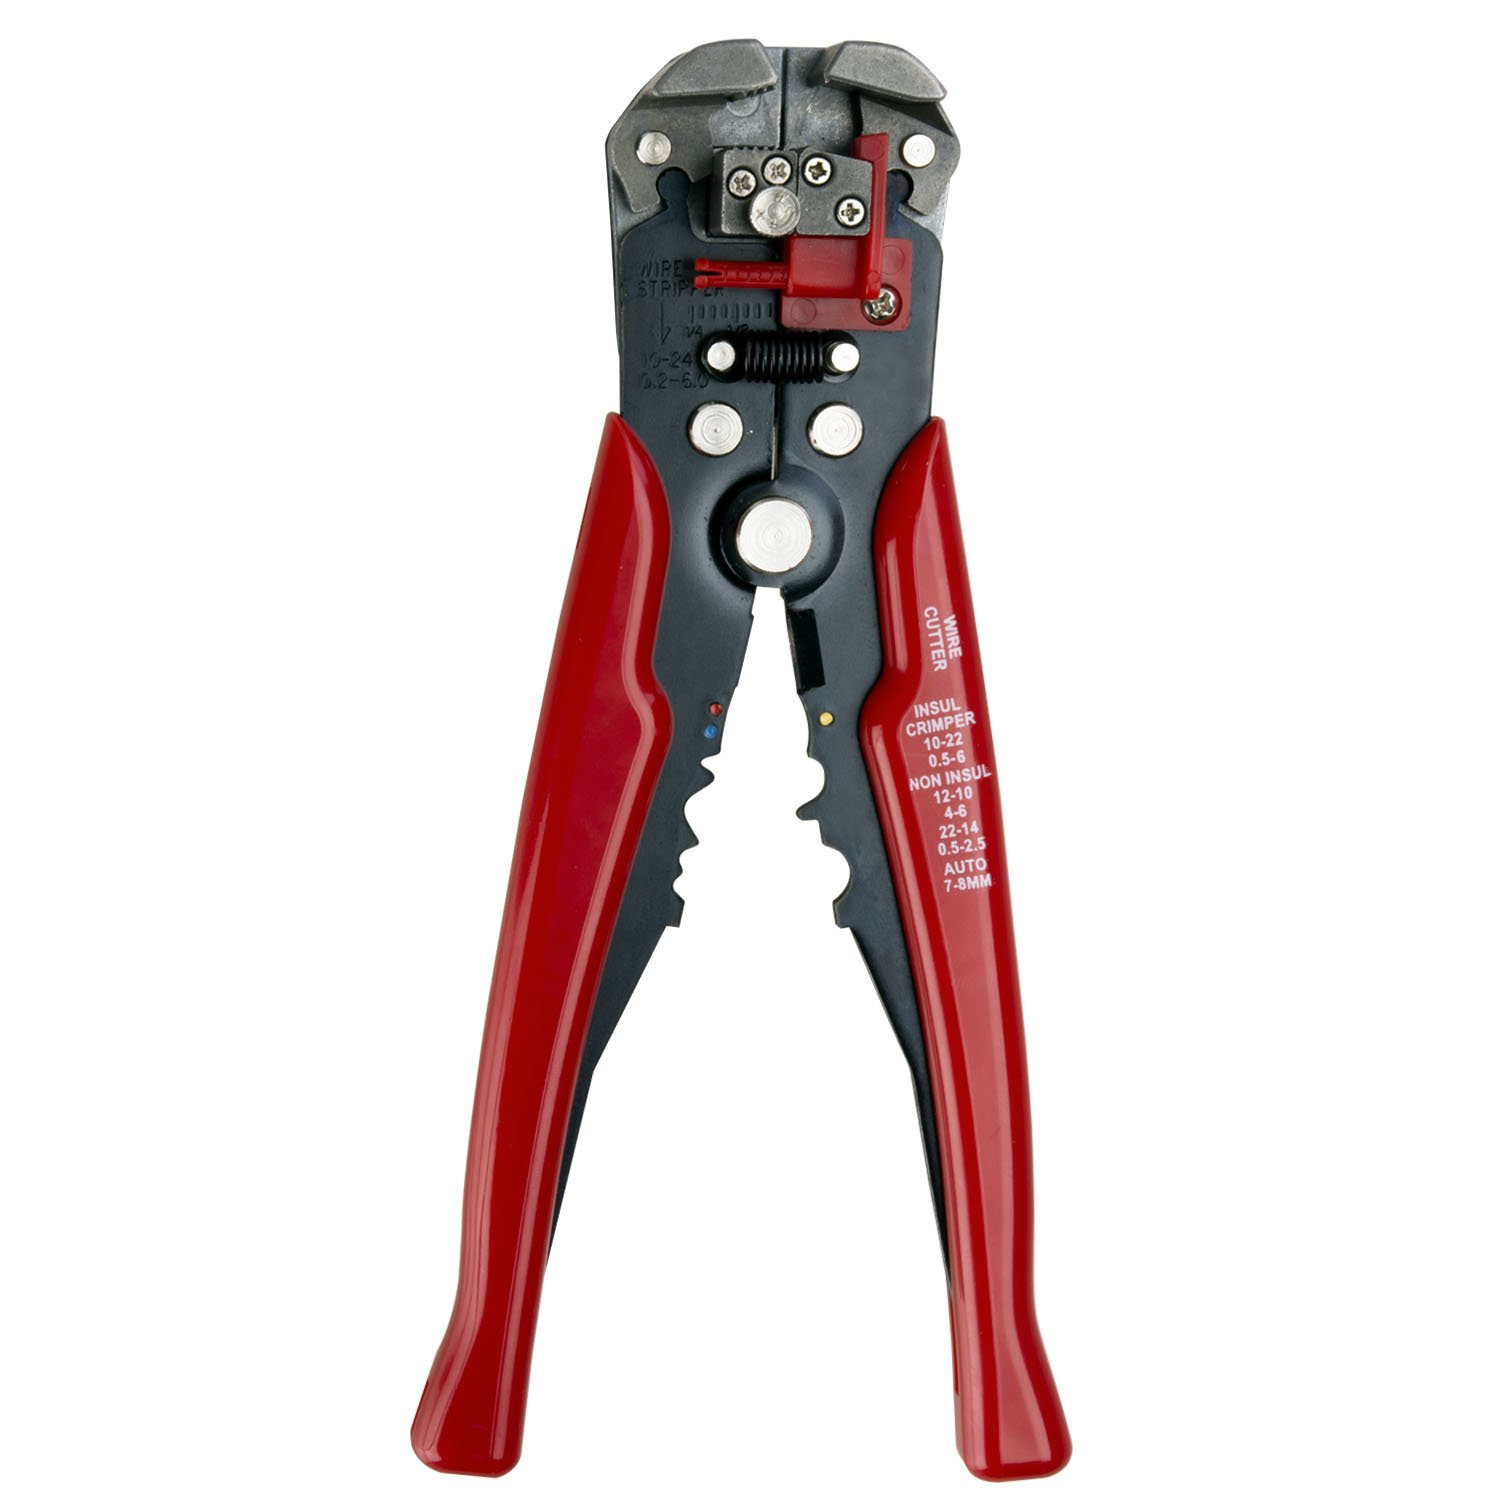 Wire Strippers | Amazon.com | Power & Hand Tools - Strippers